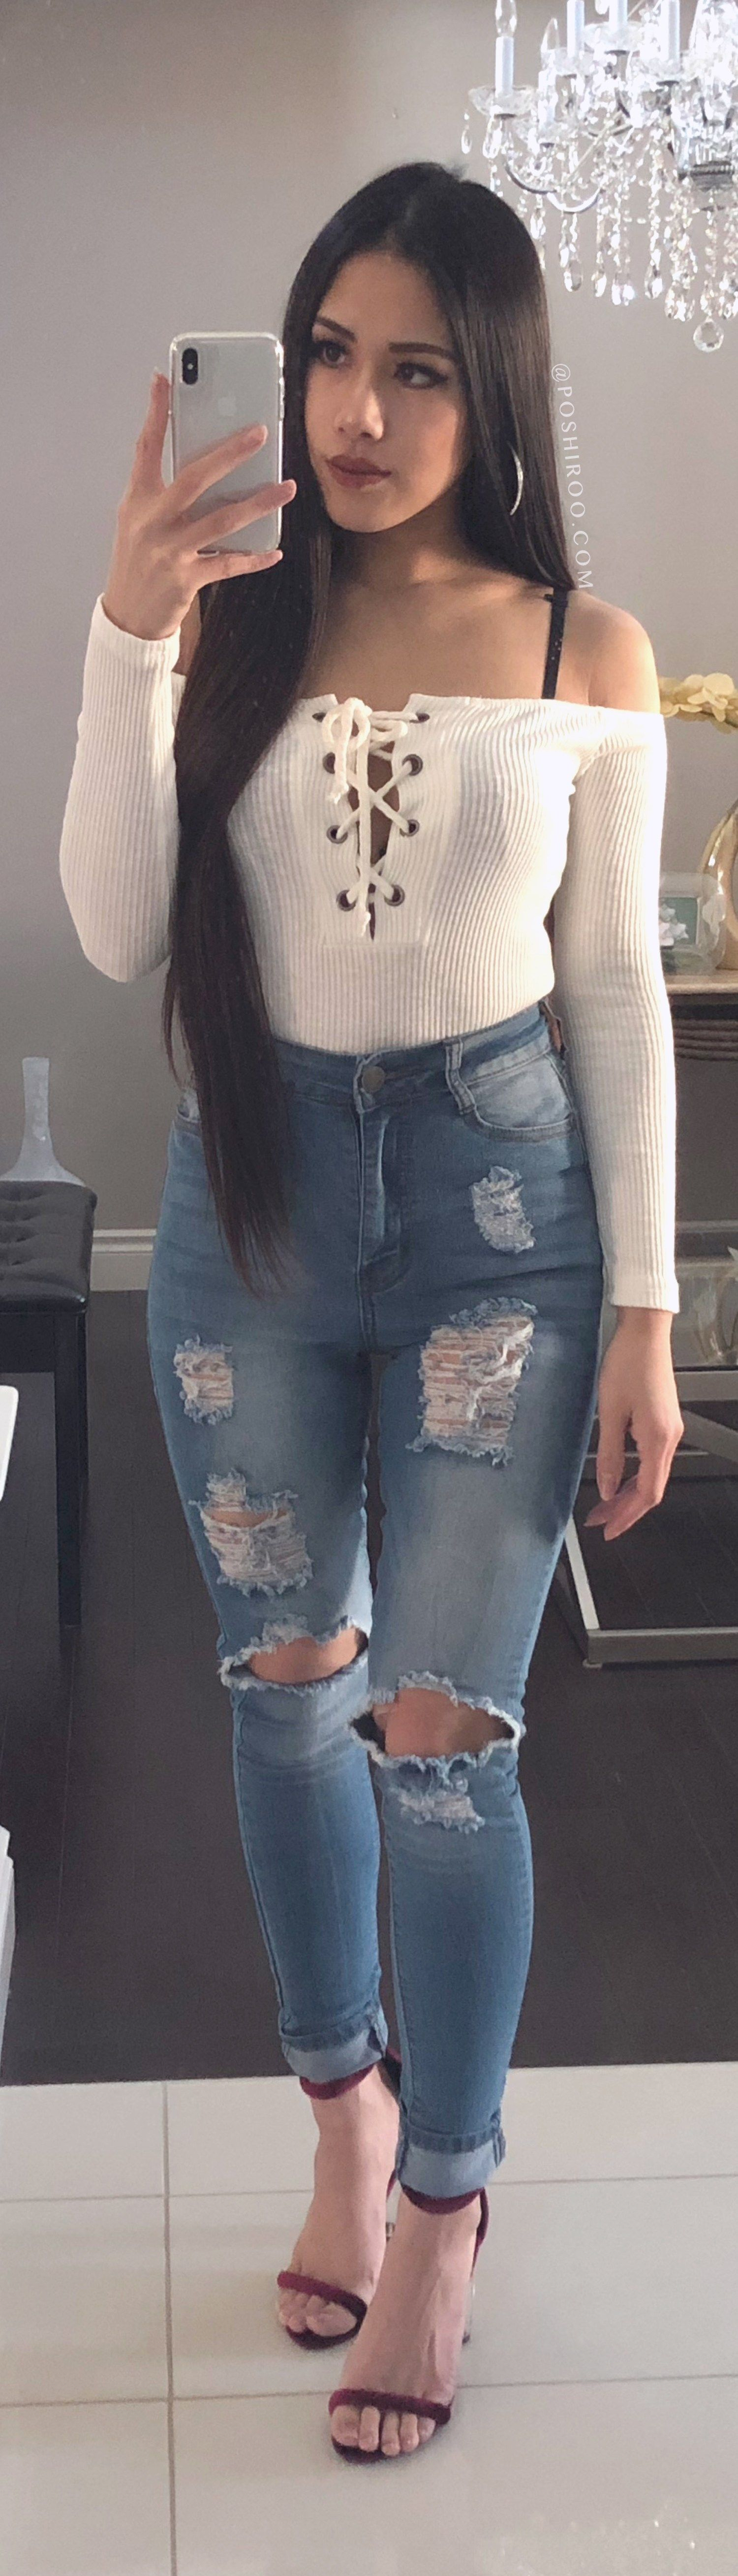 Outfit Ideas: Instagram Baddie Outfit Ideas